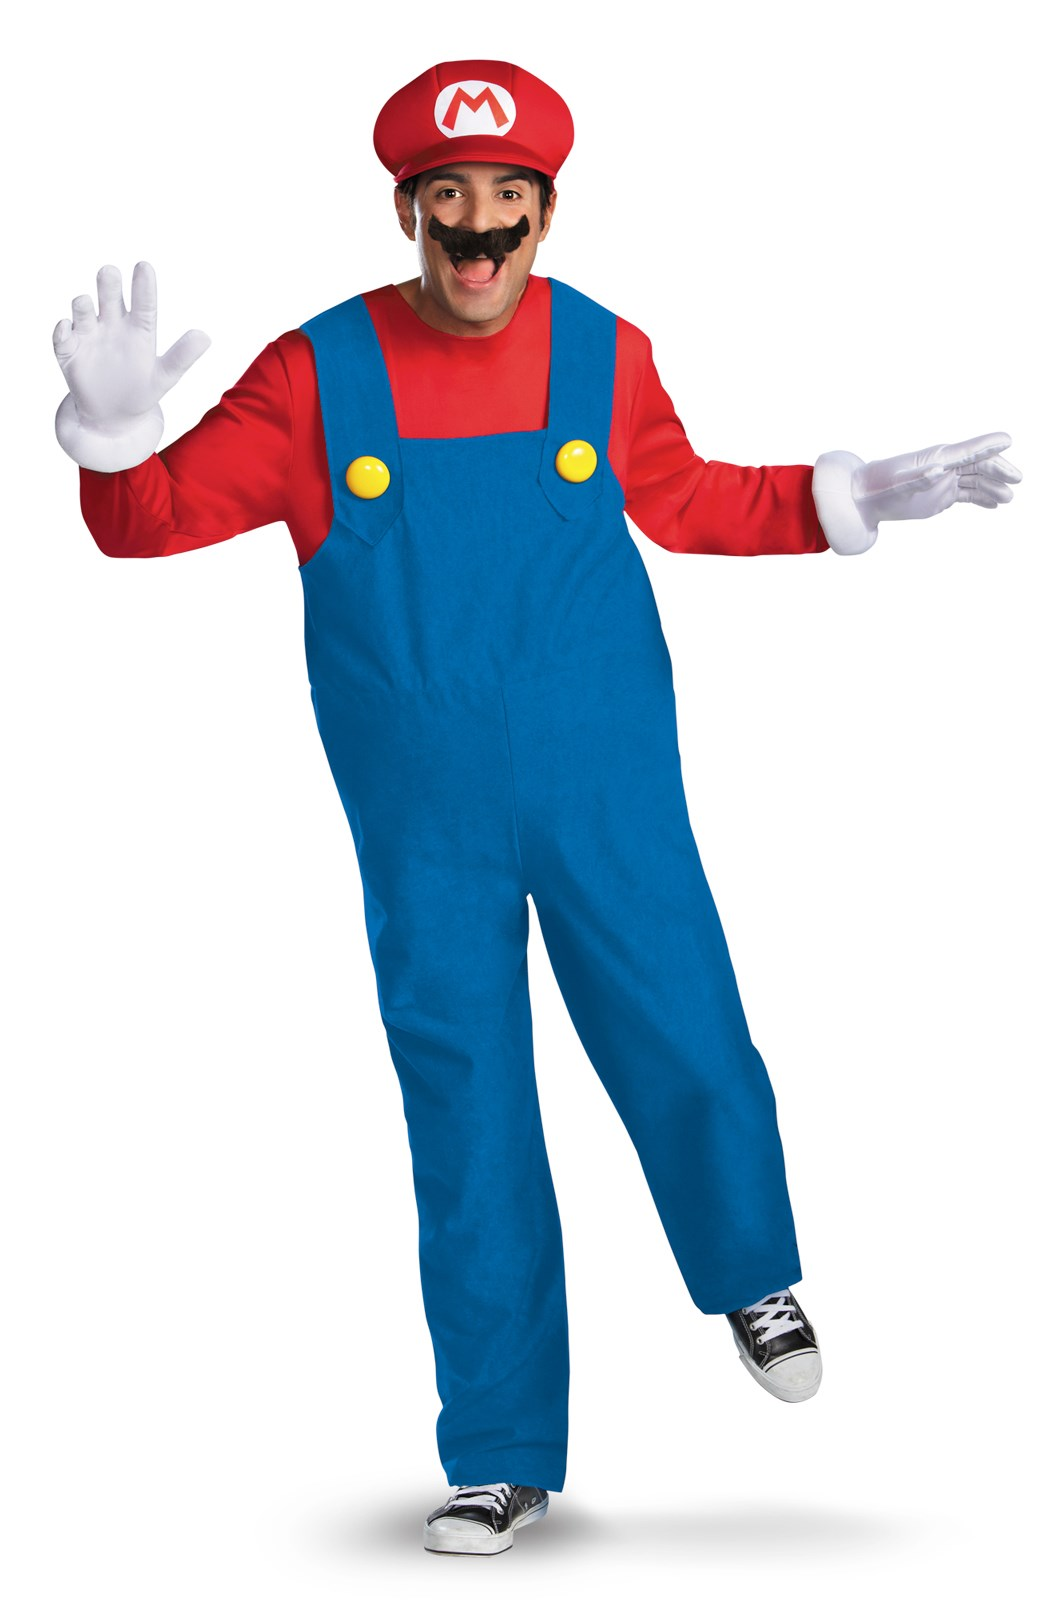 Super Mario Bros - Mario Costume X-Large (42-46)